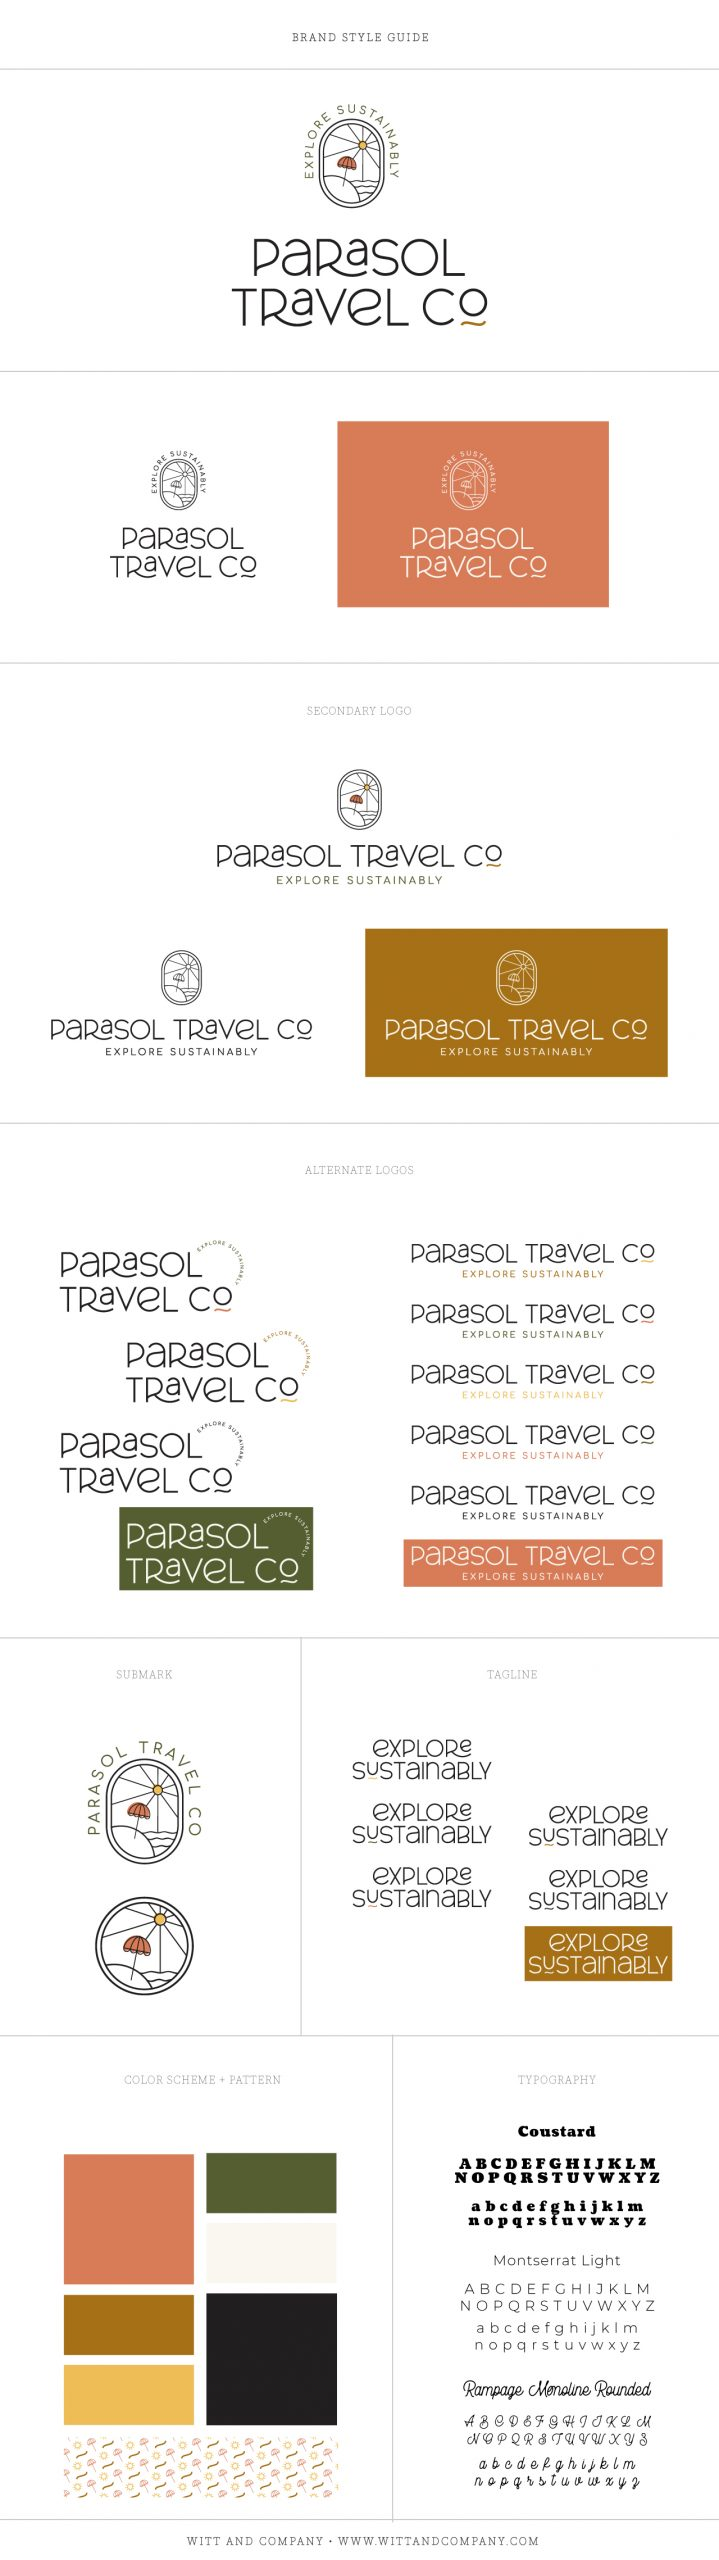 Parasol Travel Co Travel Agency Style Guide and Logo Design